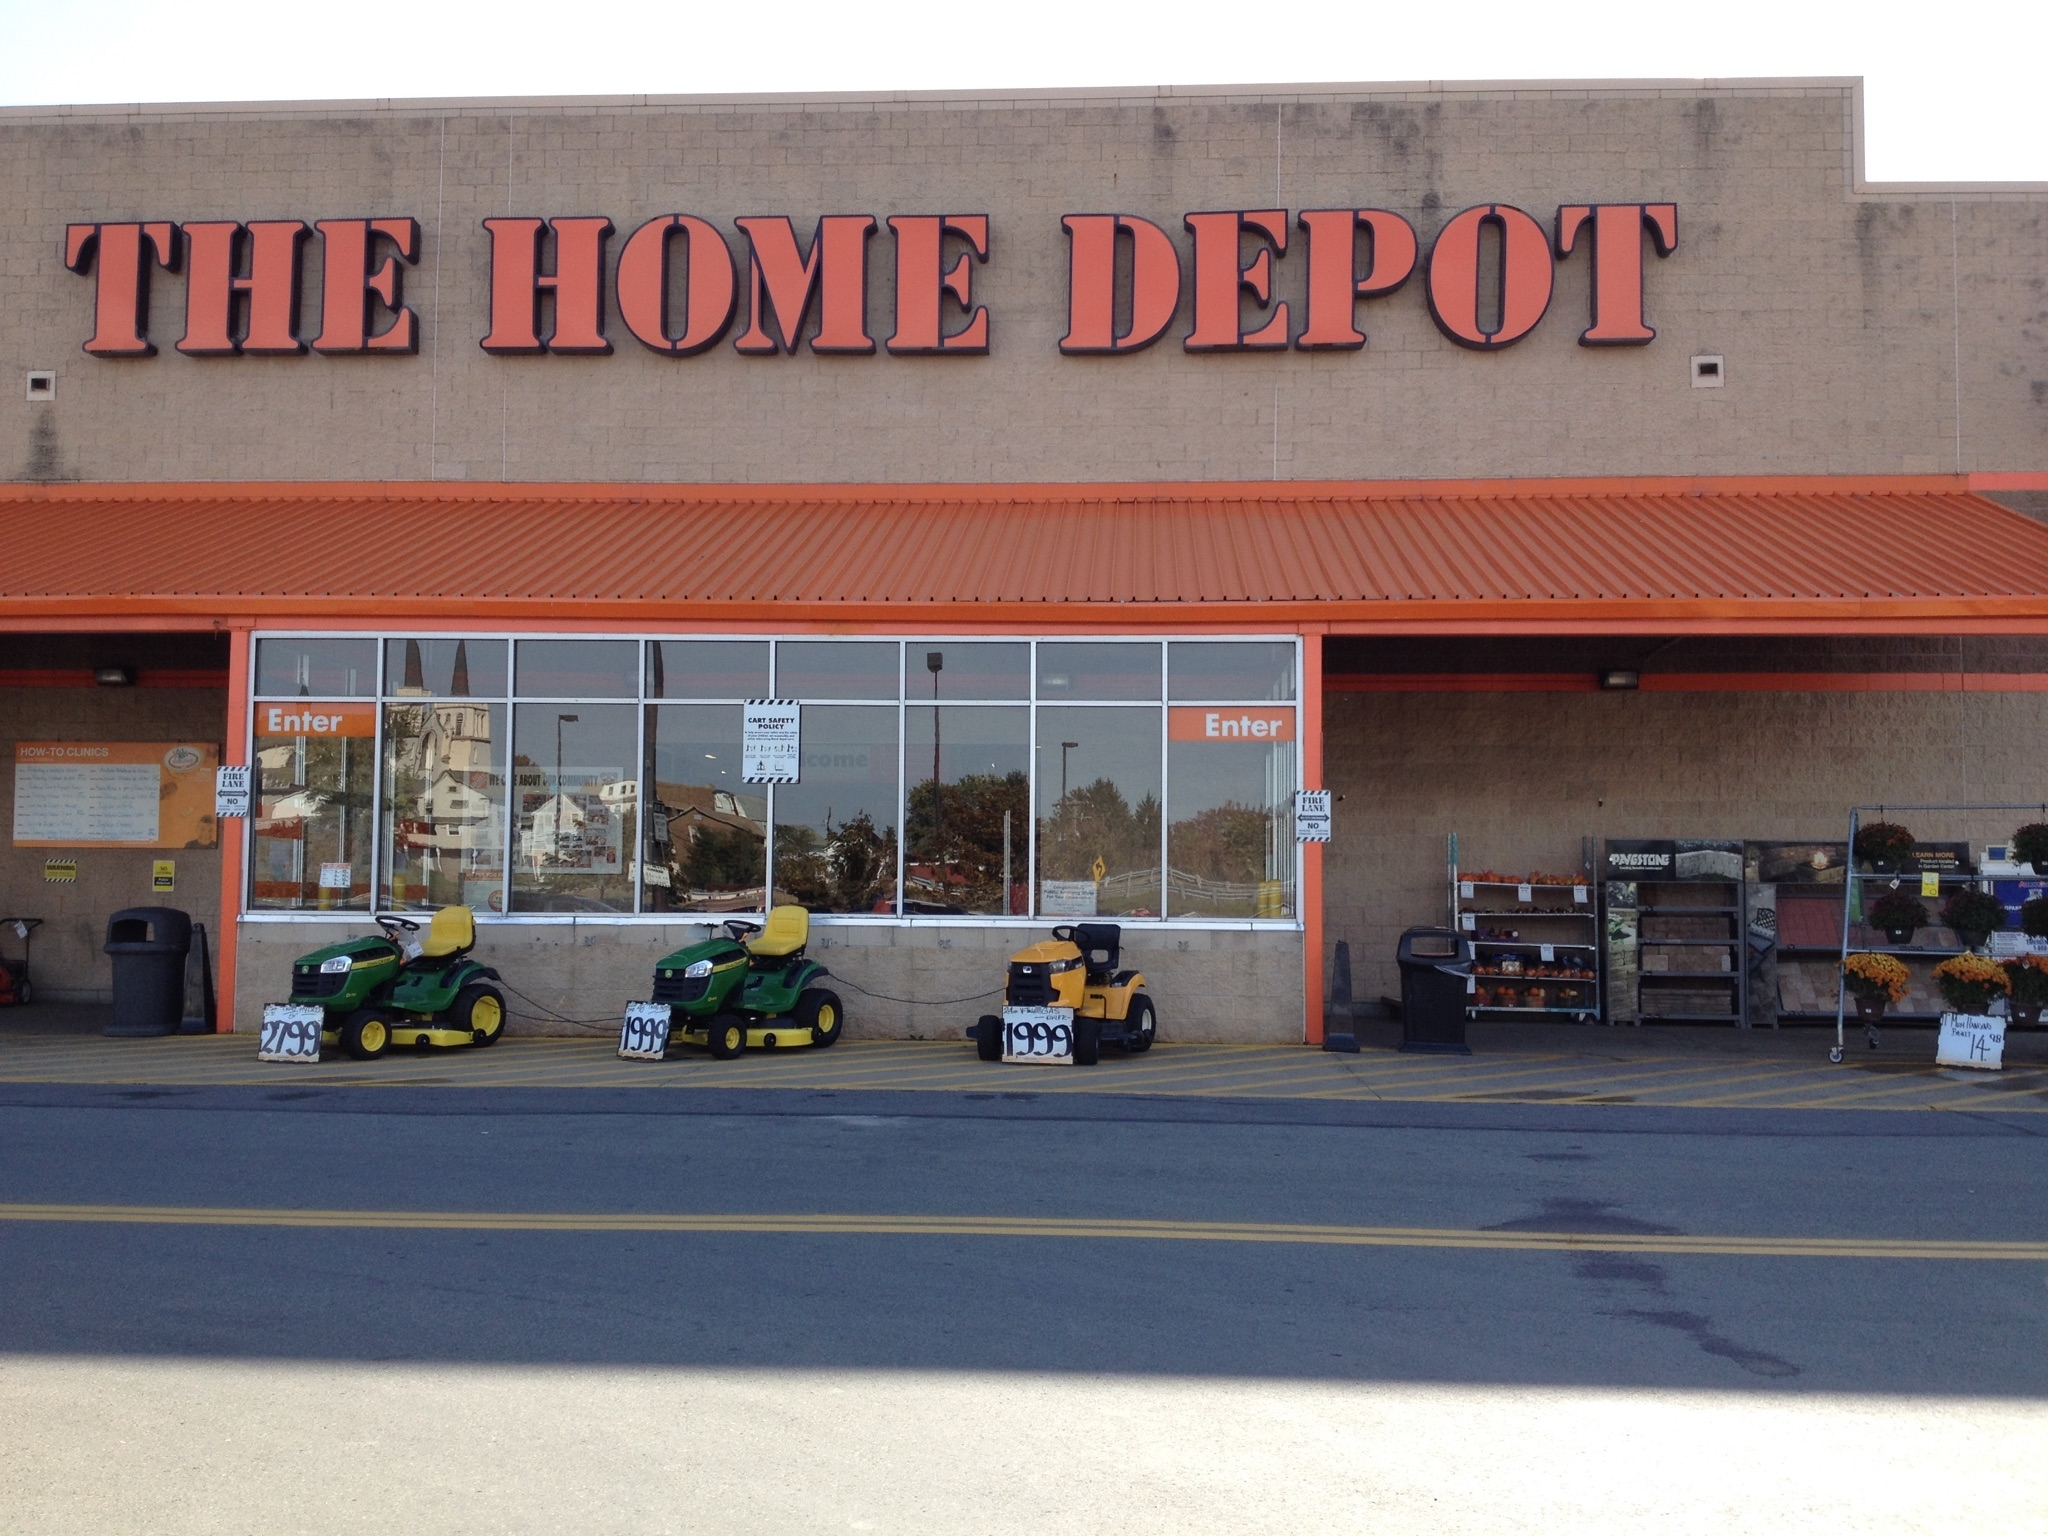 The Home Depot 41 Spring St Wilkes Barre PA Home Depot MapQuest